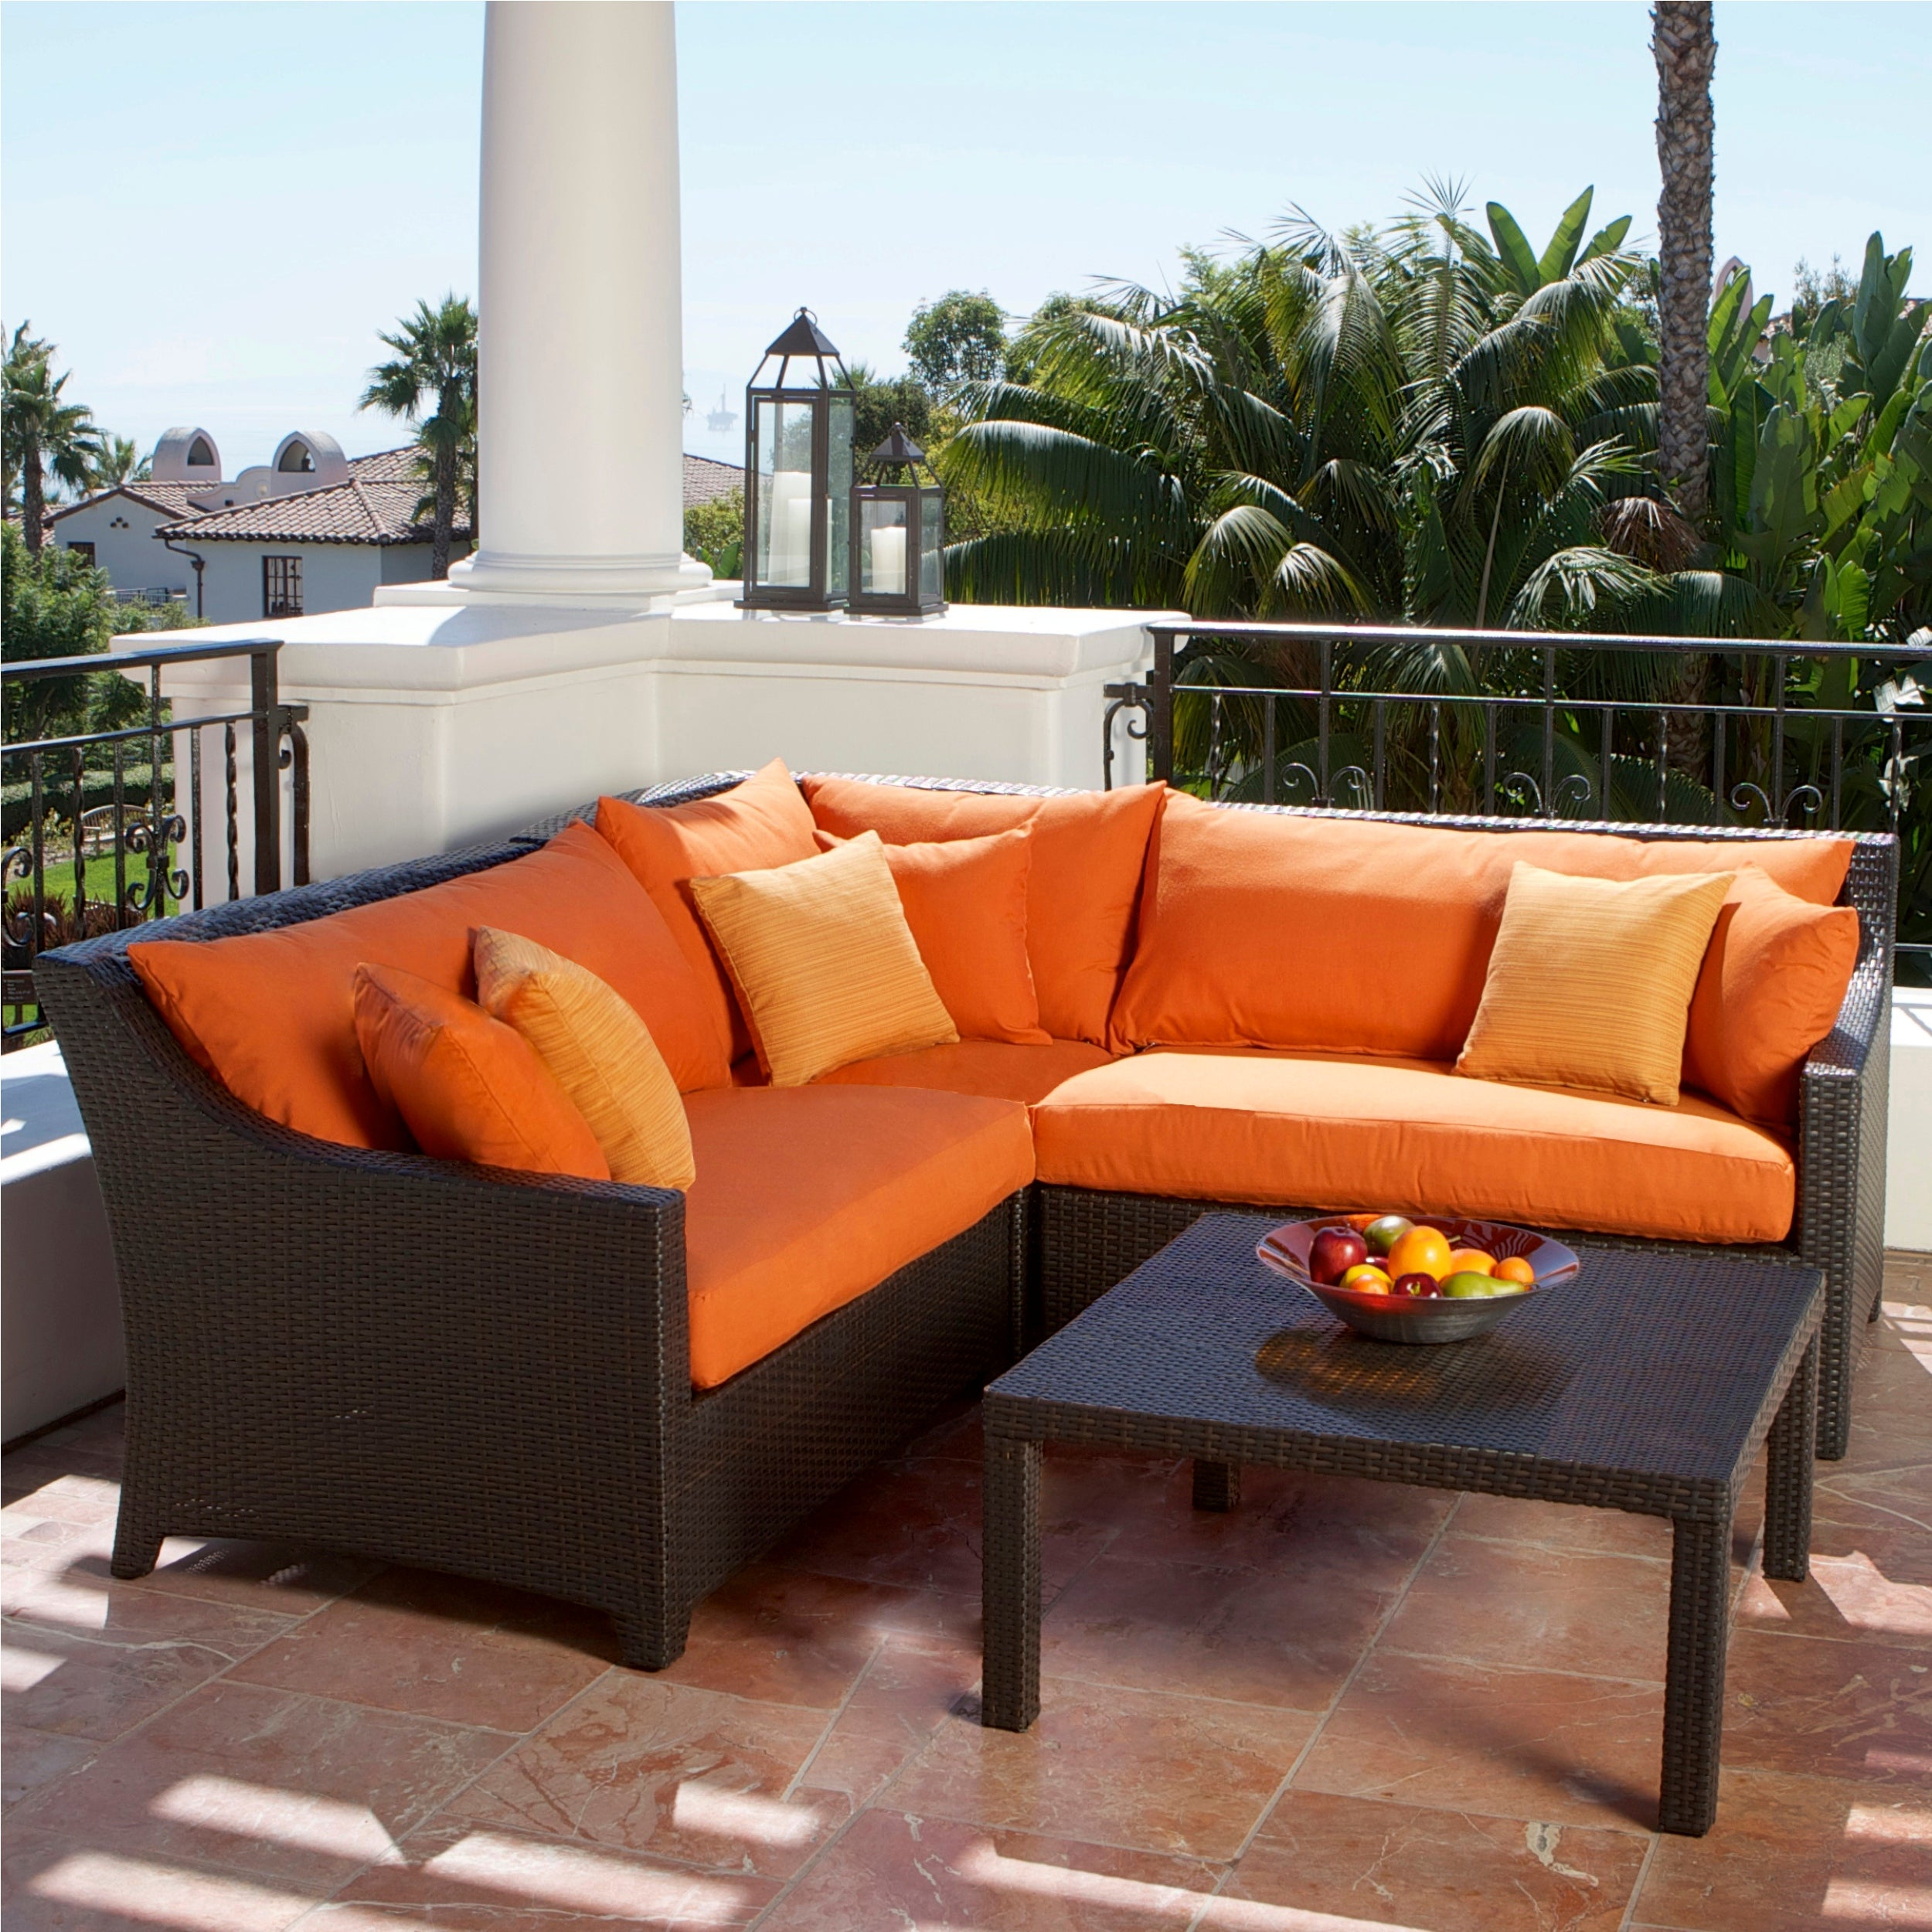 Rst Outdoor Tikka 4 Piece Corner Sectional Sofa And Coffee Table Patio Furniture Set Free Shipping Today 15063915